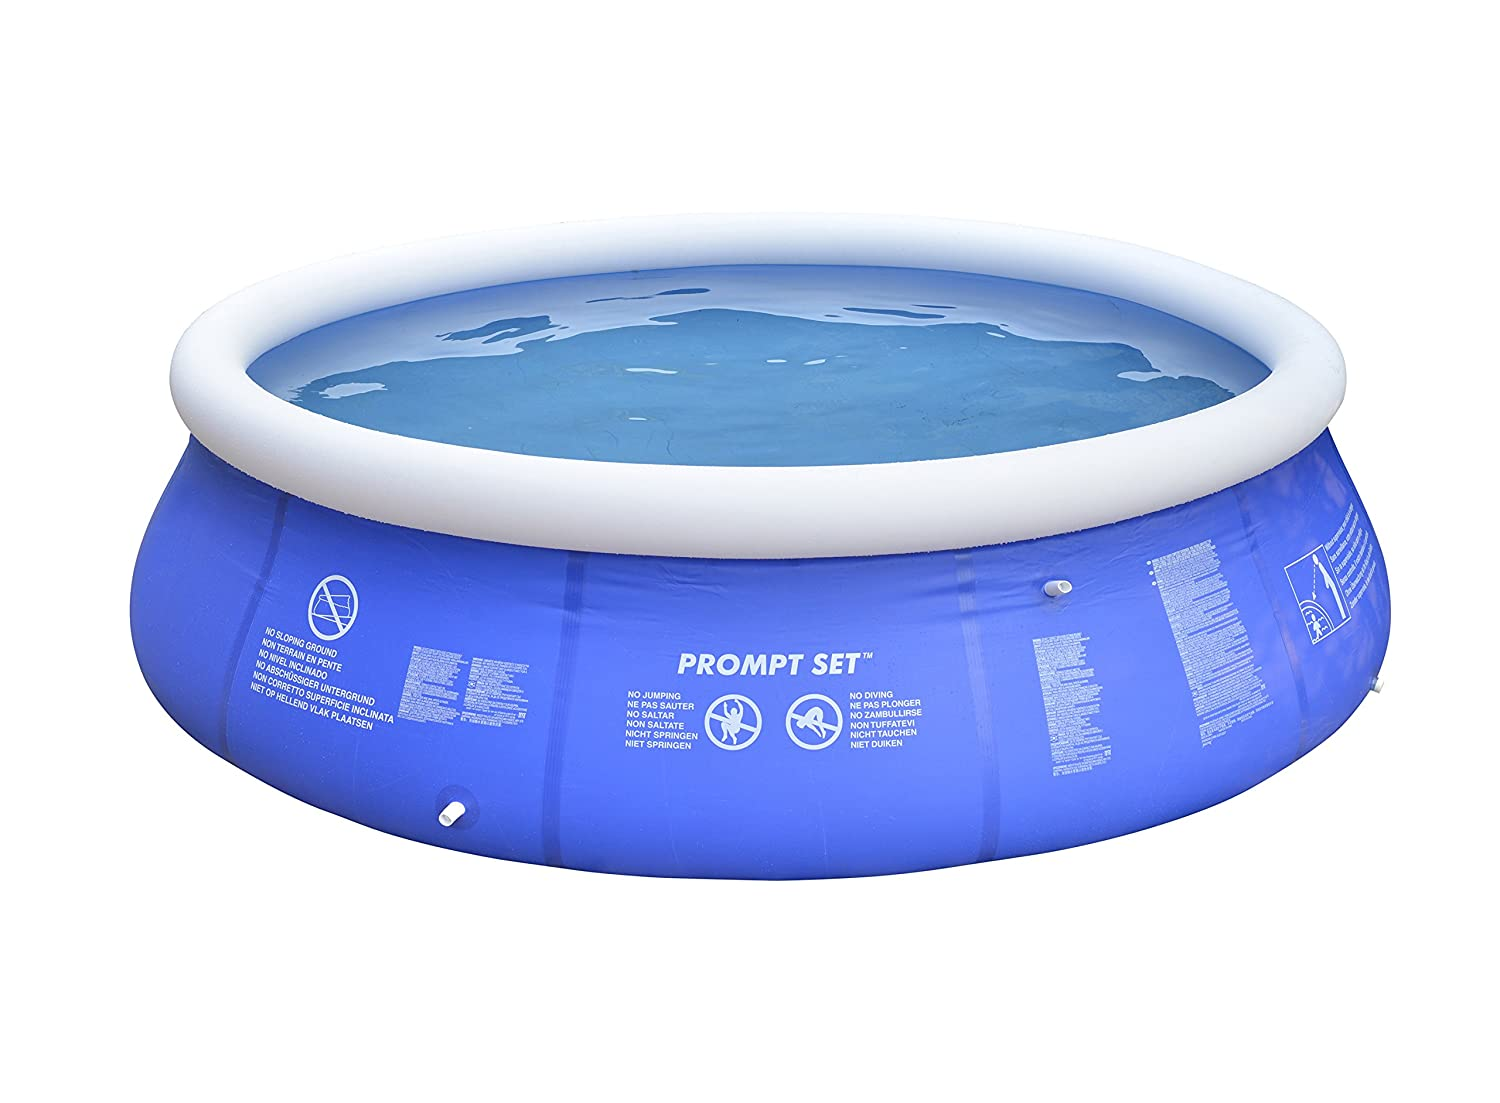 JILONG 706371 - Piscina (Piscina Hinchable, Círculo, PVC, 3,6 m, 760 mm)